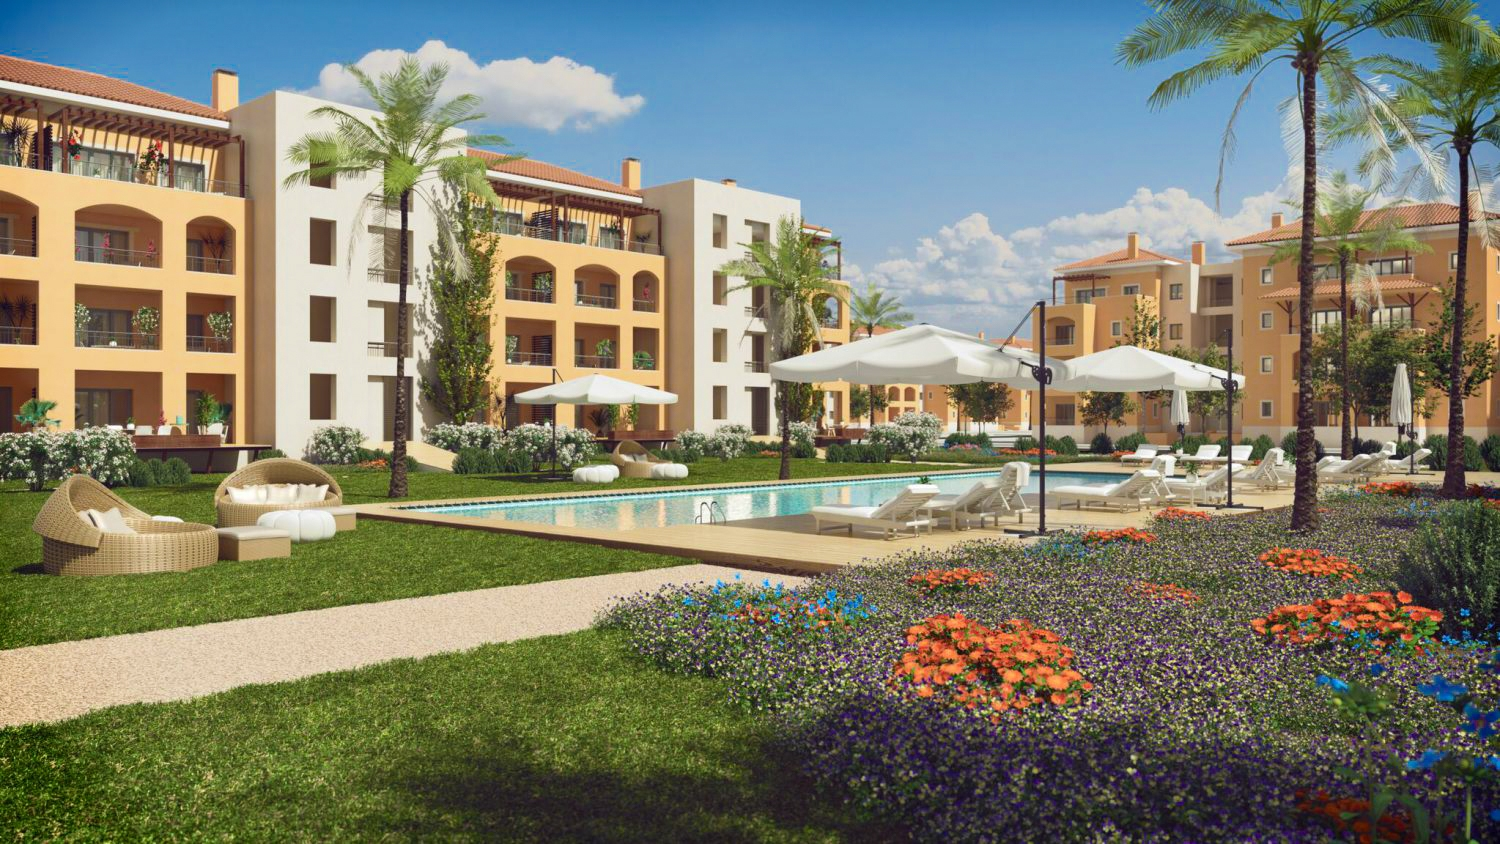 Luxury 1 Bedroom Penthouse Apartments on Golf Course, Vilamoura | VM1010 Off plan 1 bedroom penthouse apartments on a golf course, close to beaches and all amenities, in Vilamoura. The apartment has spacious balconies and a parking space in the garage.